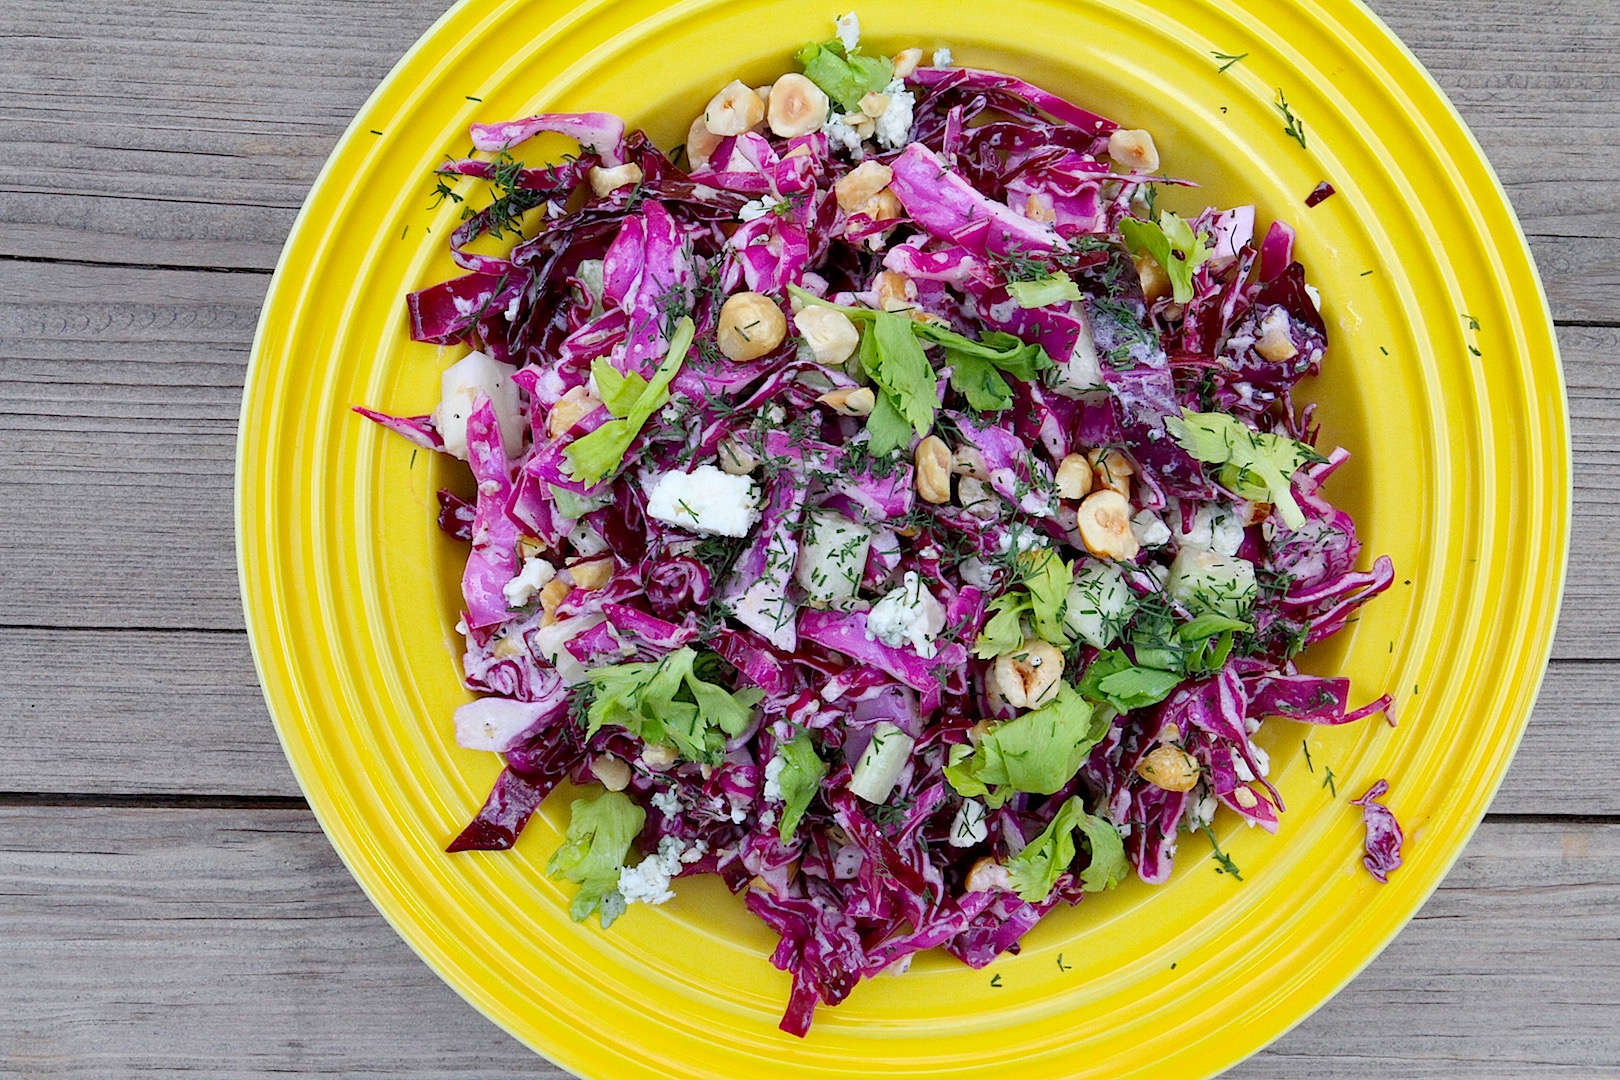 This Perfect Salad Proves That Eating Healthy Doesn't Have To Be Miserable